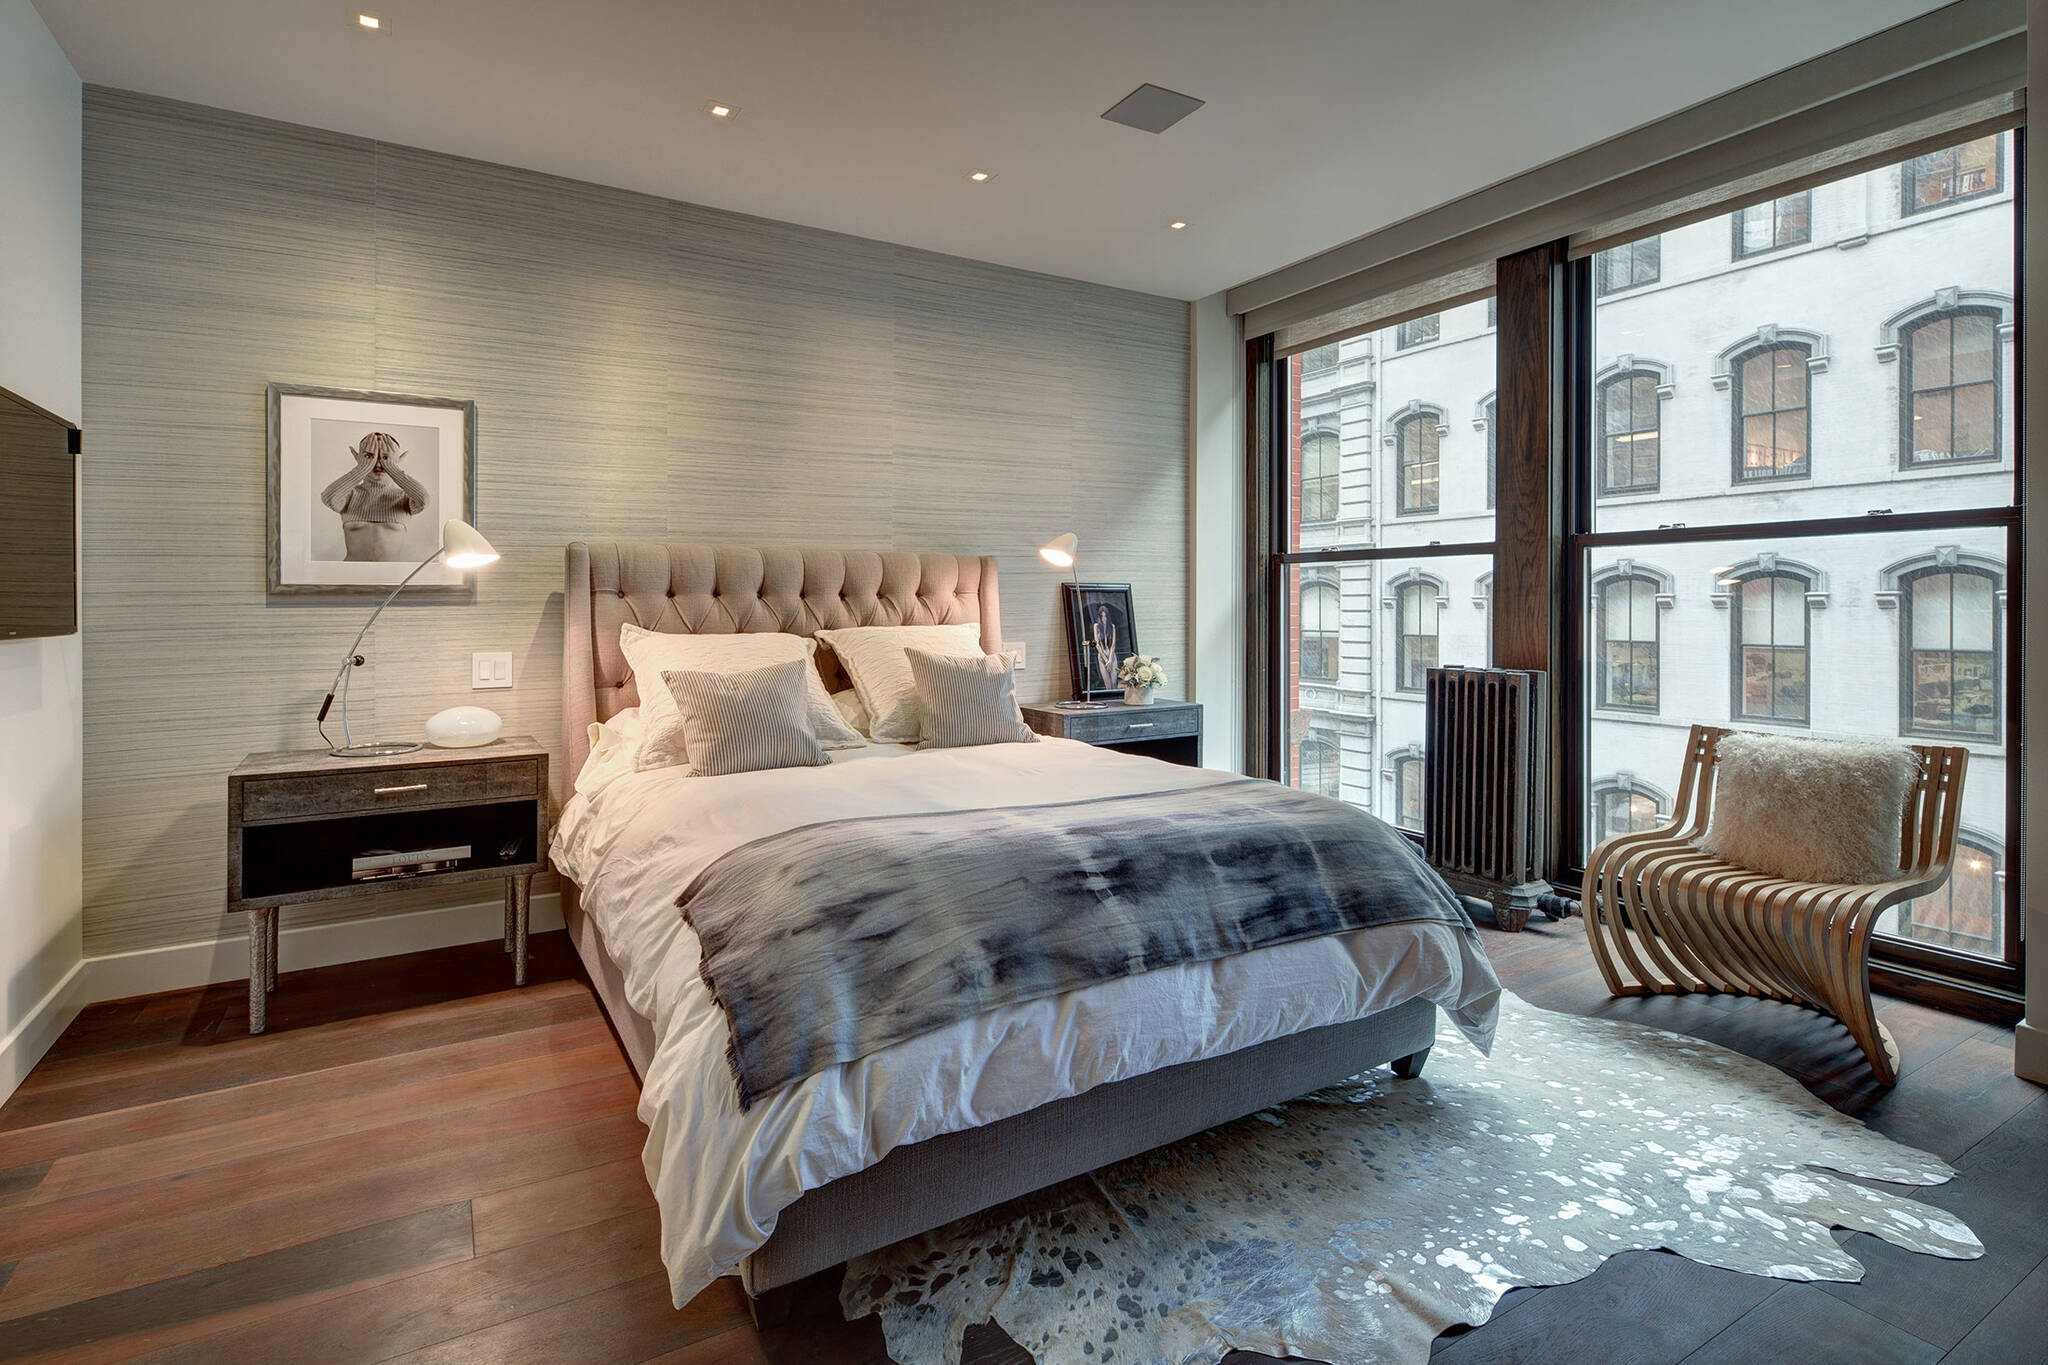 Guest bedroom of the loft renovation project in Union Square, New York City designed by the architecture studio Danny Forster & Architecture